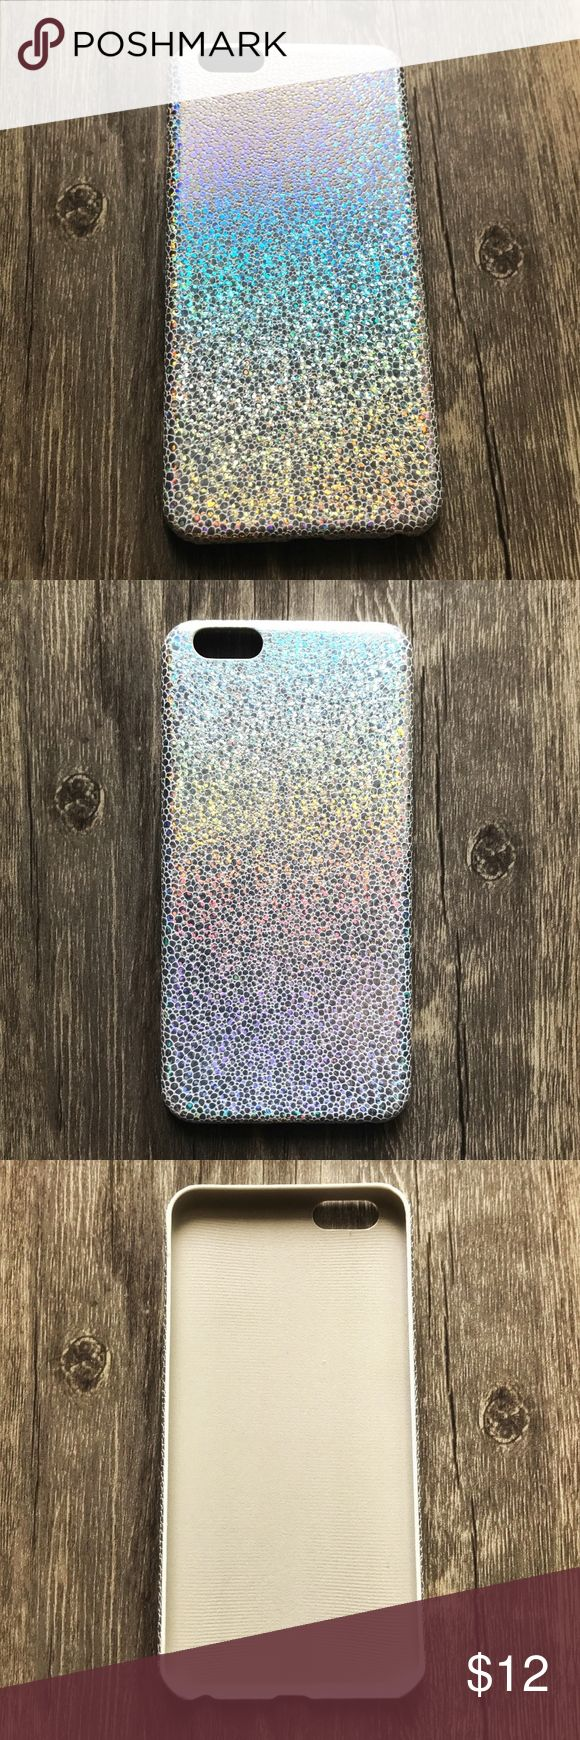 iPhone 6 6s Plus Fish Scale Rainbow Leather Case ▪️BRAND NEW SEALED iPhone 6 6s Plus Case   ▪️Bright, Iridescent Rainbow Fish Scales Design   ▪️PU Leather, Great Textured Feel, Perfect Hybrid Material!   ▪️Built-in Padding Inside Case To Protect Phone ▪️Same or Next Business Day Shipping Kerzzil Accessories Phone Cases